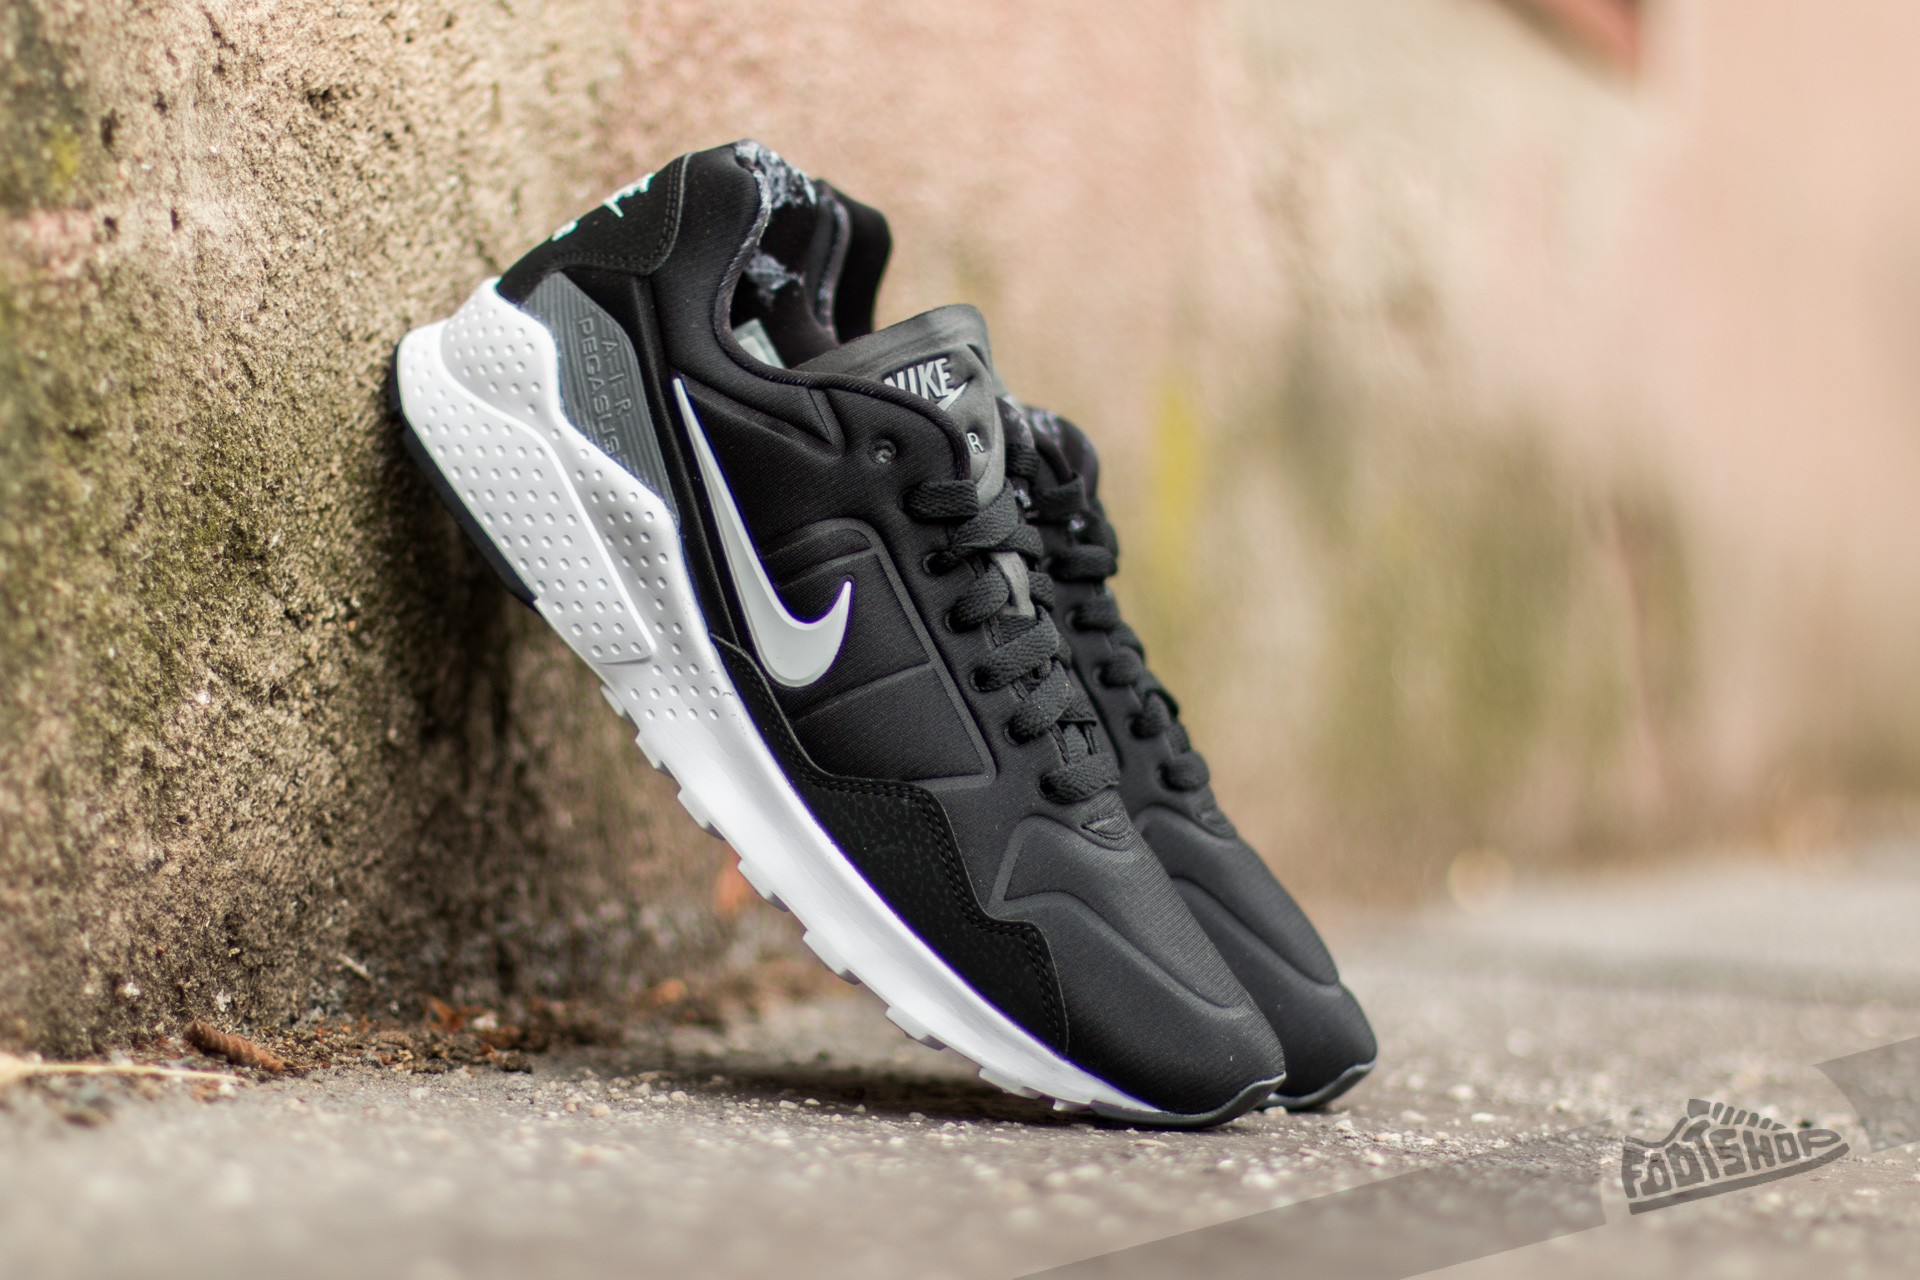 chaussures de séparation b0048 dc751 Nike Air Zoom Pegasus 92 Black/ White-Dark Grey | Footshop